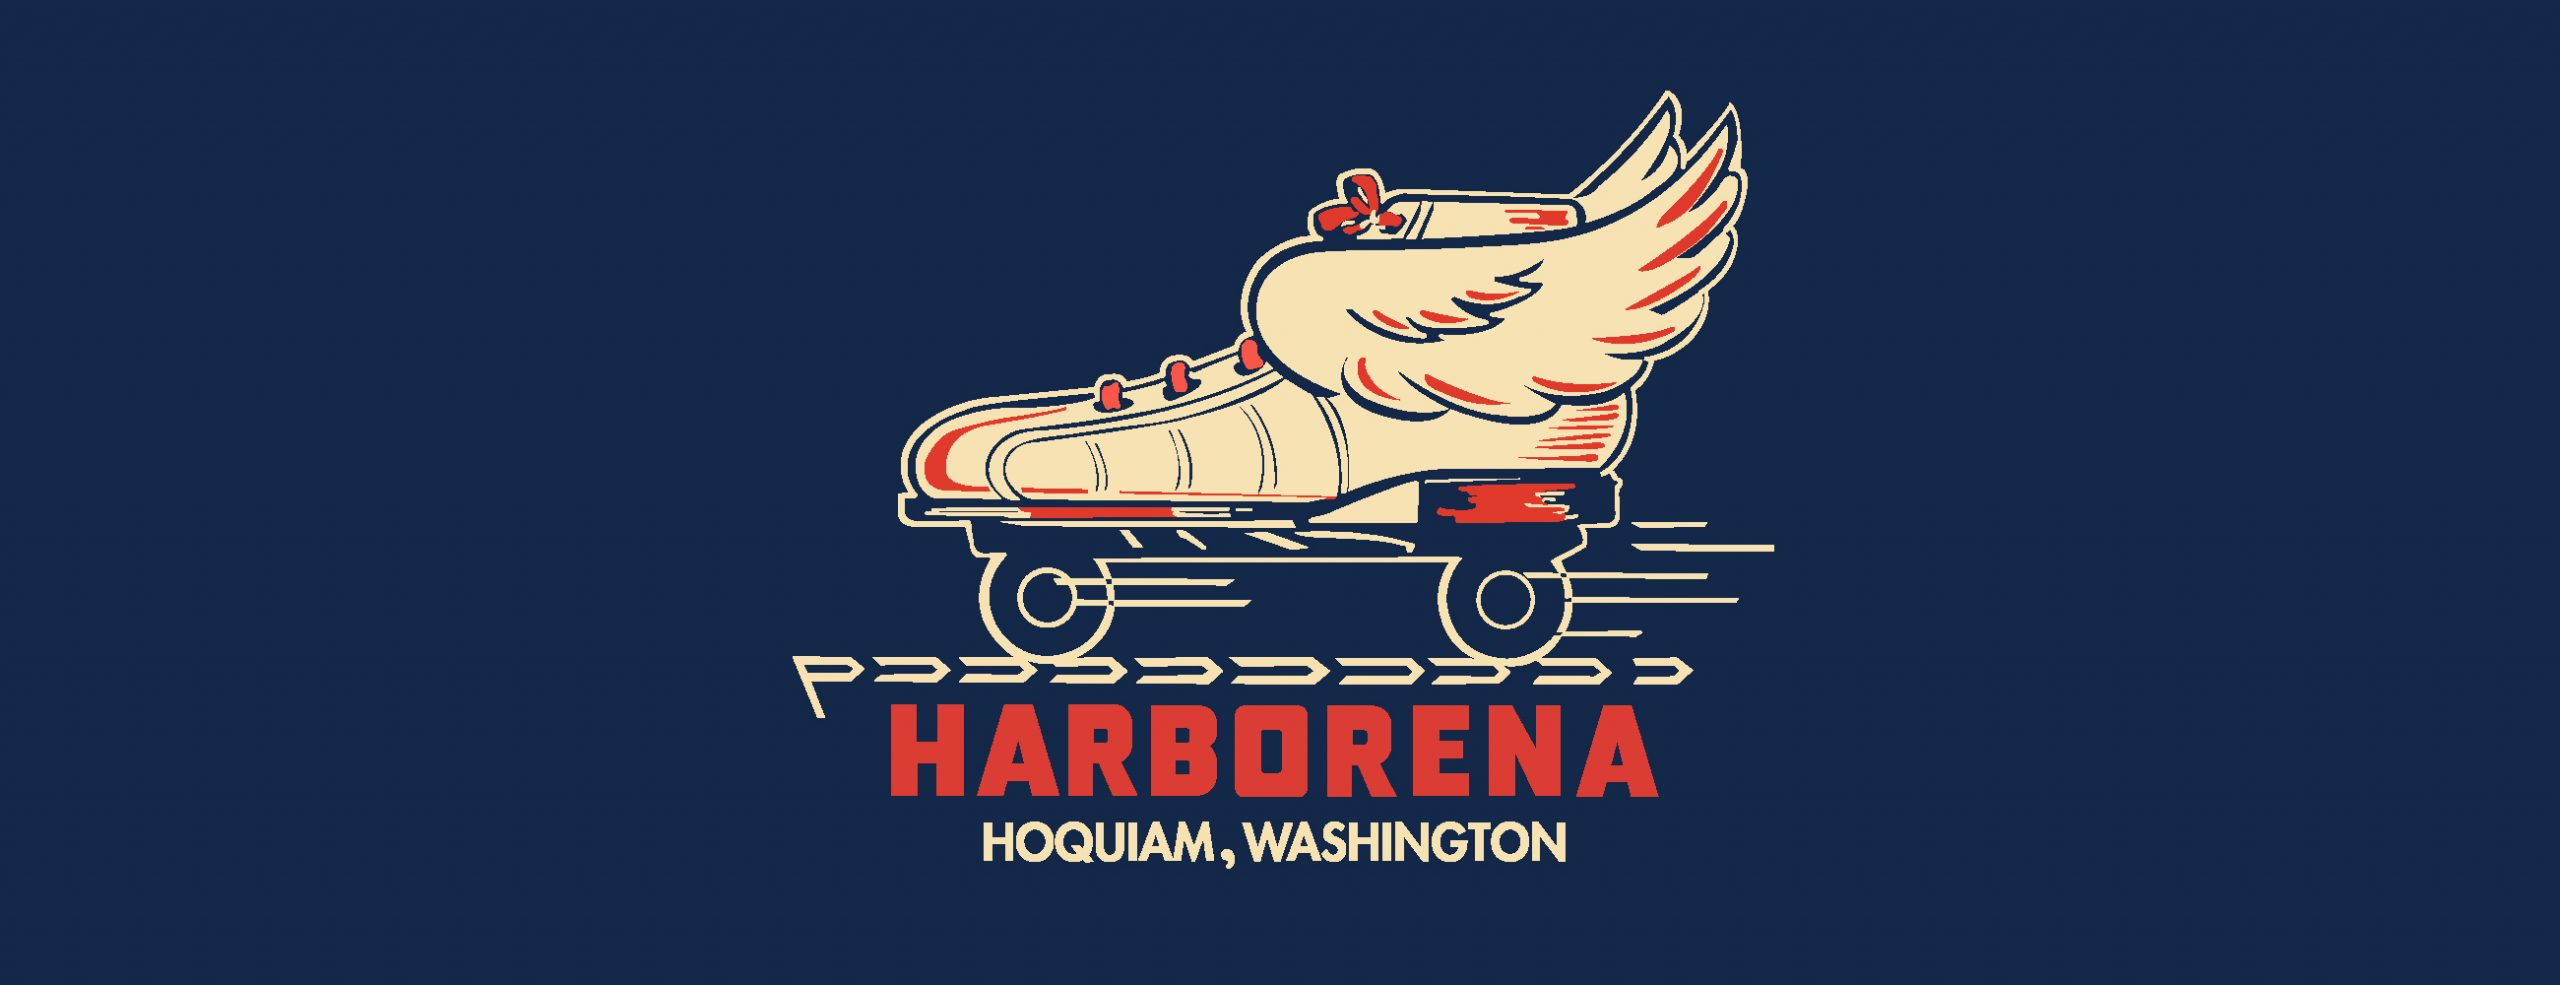 The Harborena